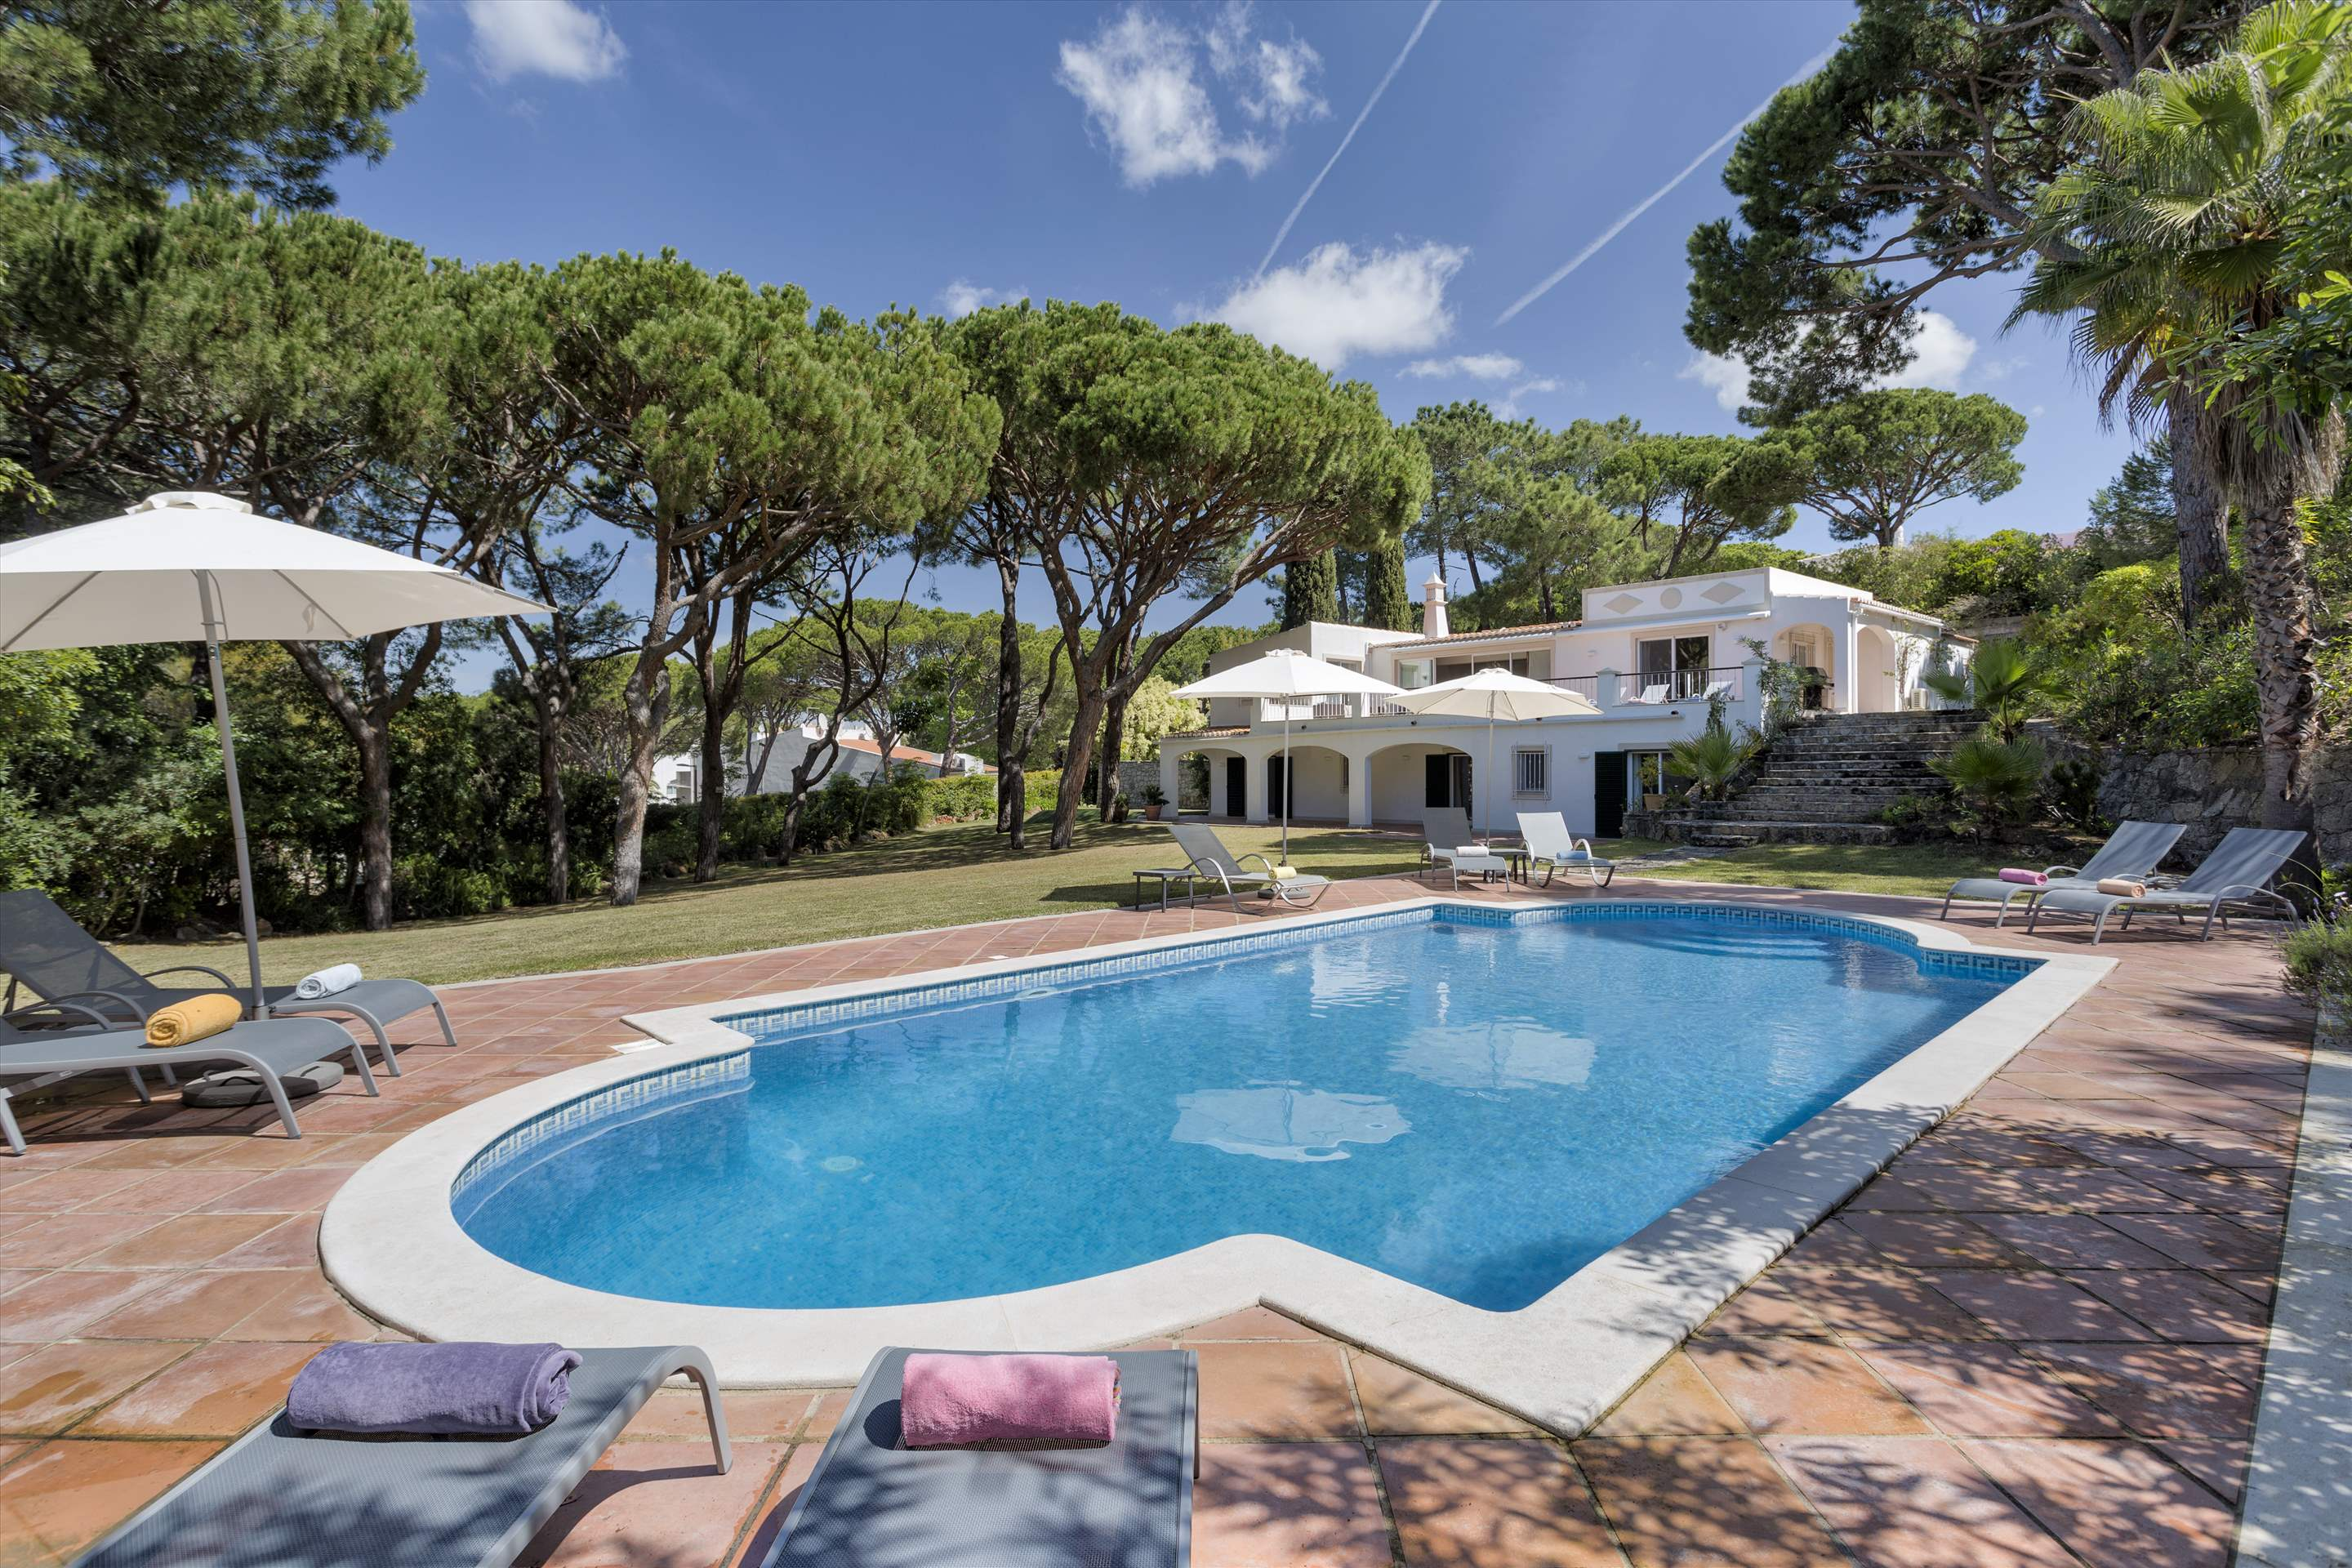 Villa Rosemaria, 5 Bedrooms, 5 bedroom villa in Vale do Lobo, Algarve Photo #18